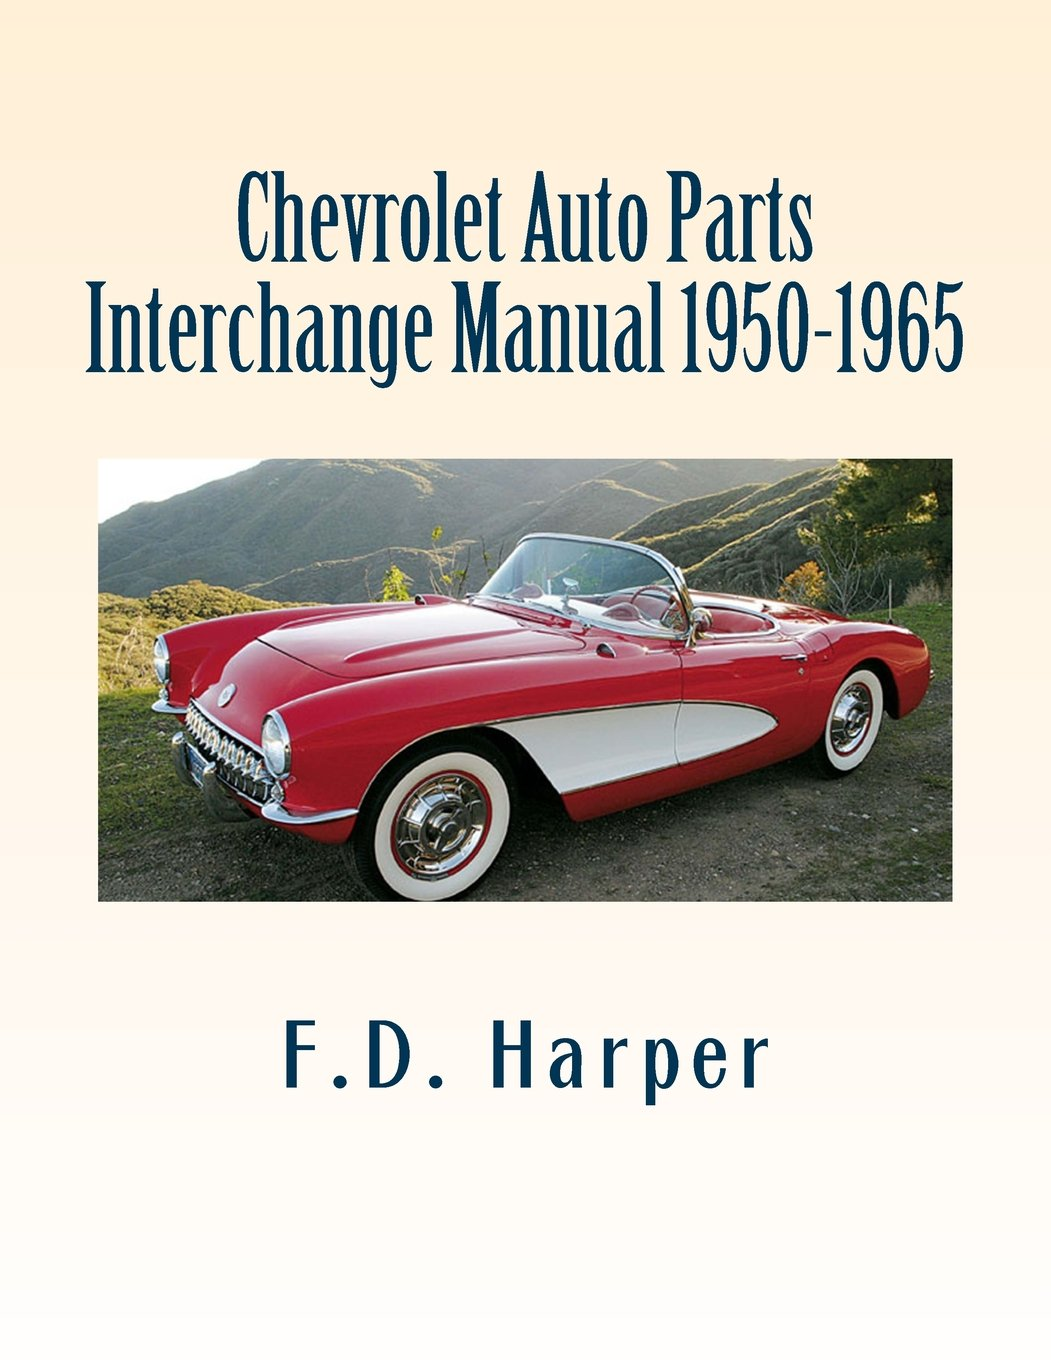 Buy Chevrolet Auto Parts Interchange Manual 1950-1965 Book Online at Low  Prices in India | Chevrolet Auto Parts Interchange Manual 1950-1965 Reviews  ...